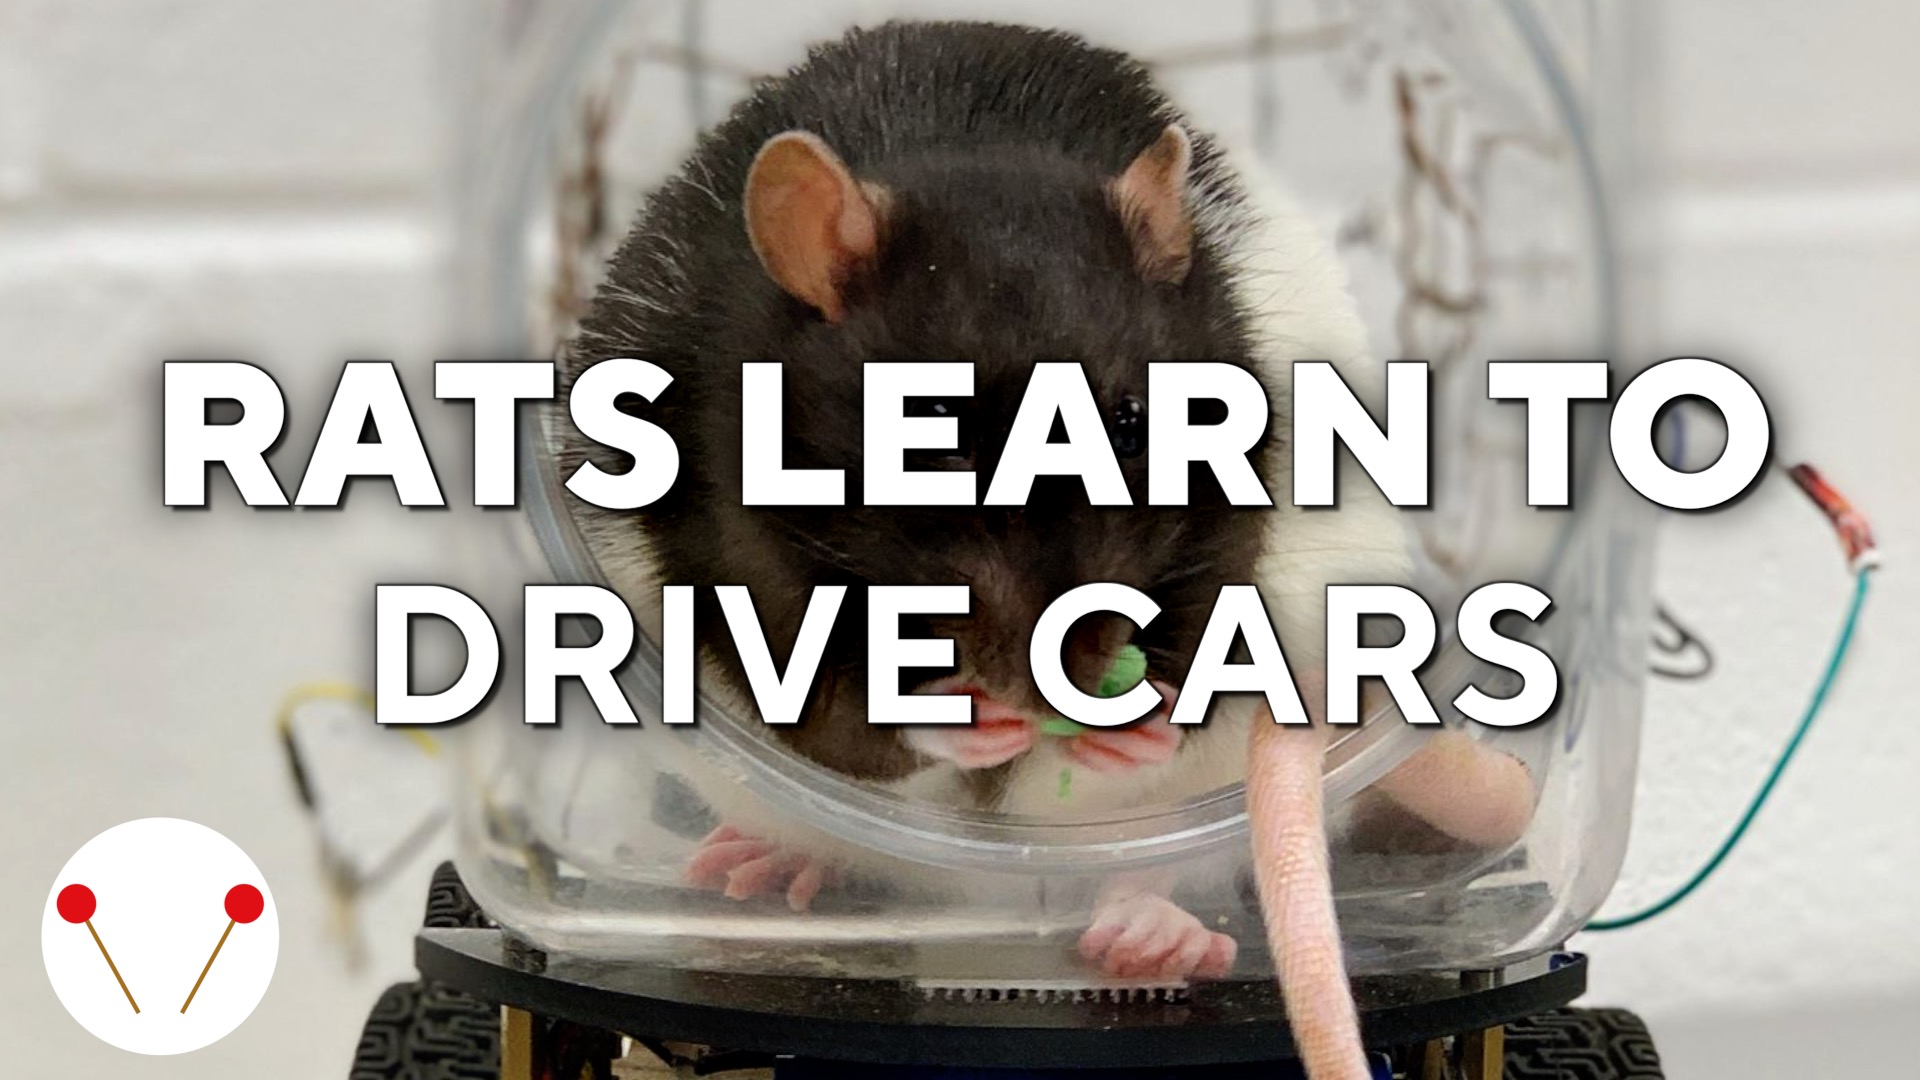 This rat learned to drive a tiny car